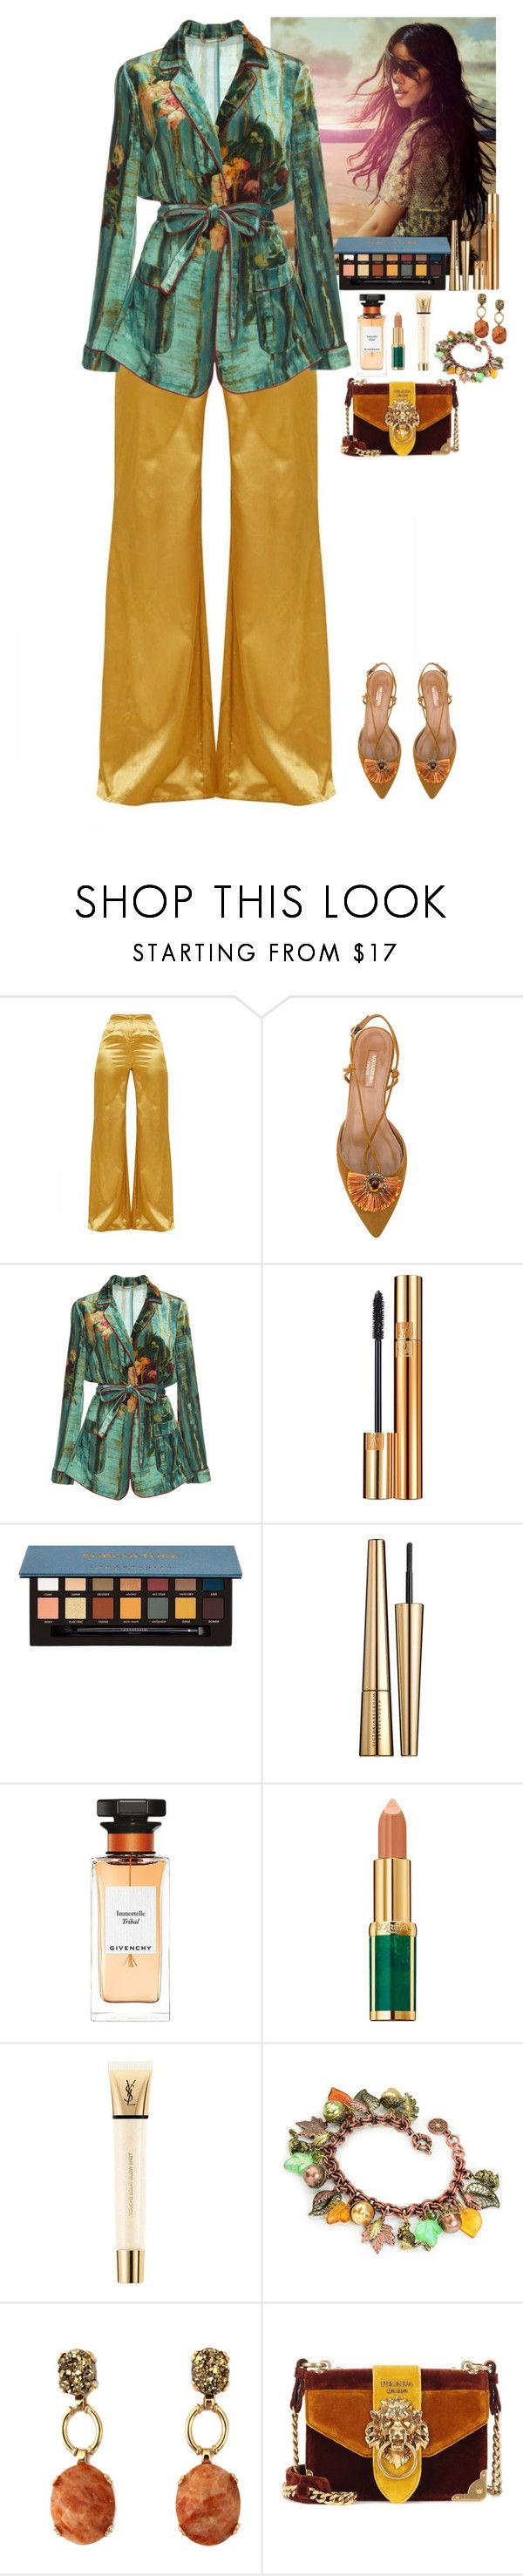 """""""Outfit"""" by eliza-redkina ❤ liked on Polyvore featuring Aquazzura, Alberta Ferretti, Yves Saint Laurent, Anastasia Beverly Hills, Victoria Beckham, Givenchy, Balmain, Prada, outfit and like"""